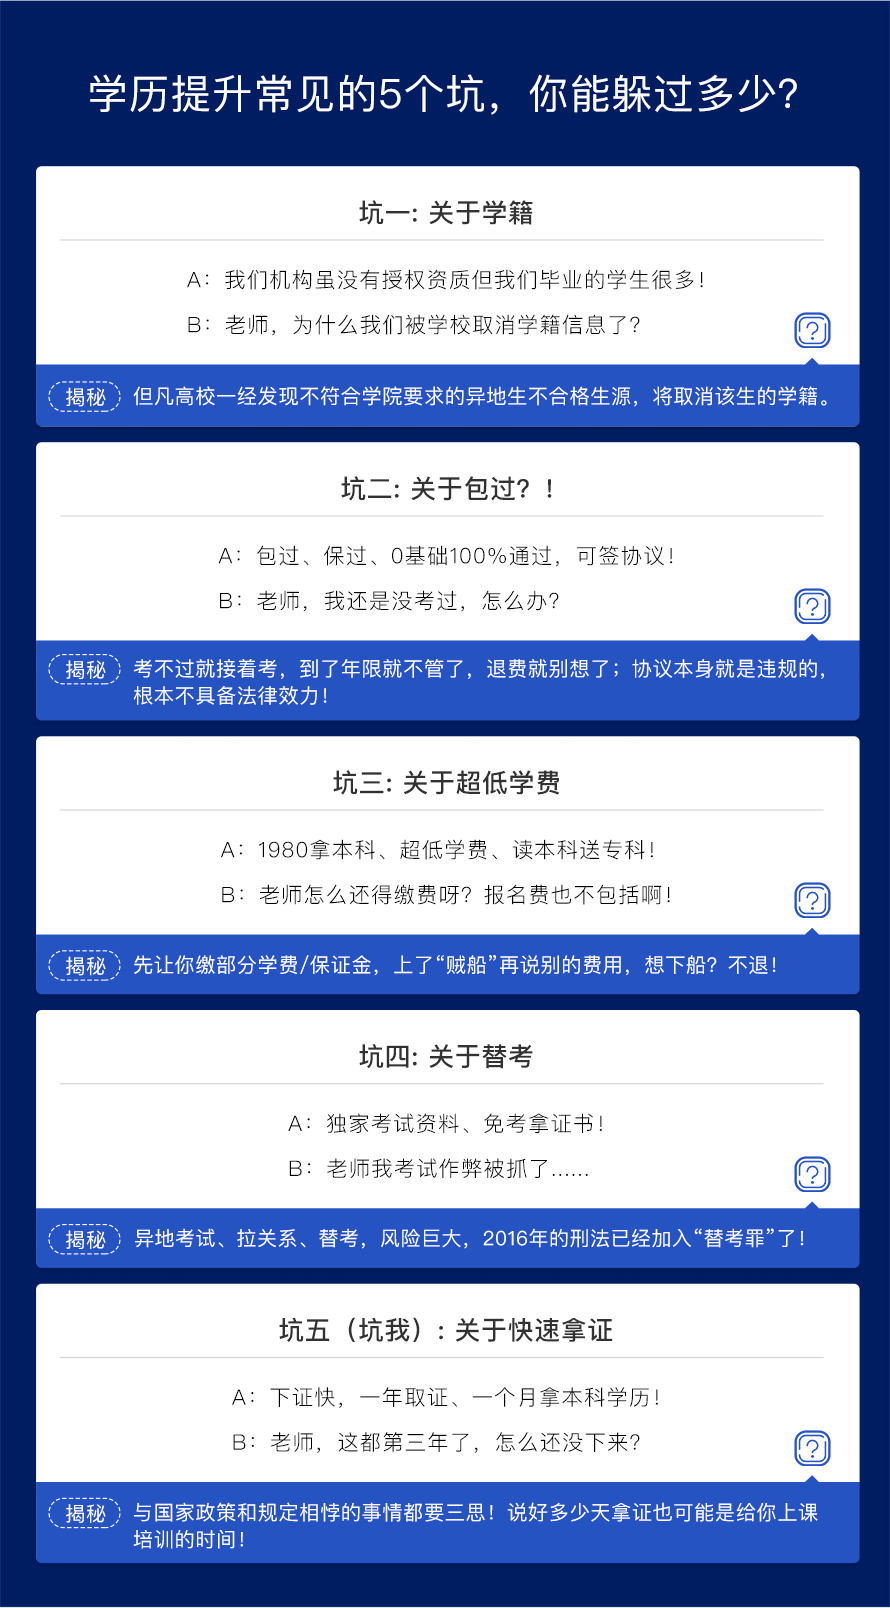 http://www.open.com.cn/product/img/product/common/05.jpg